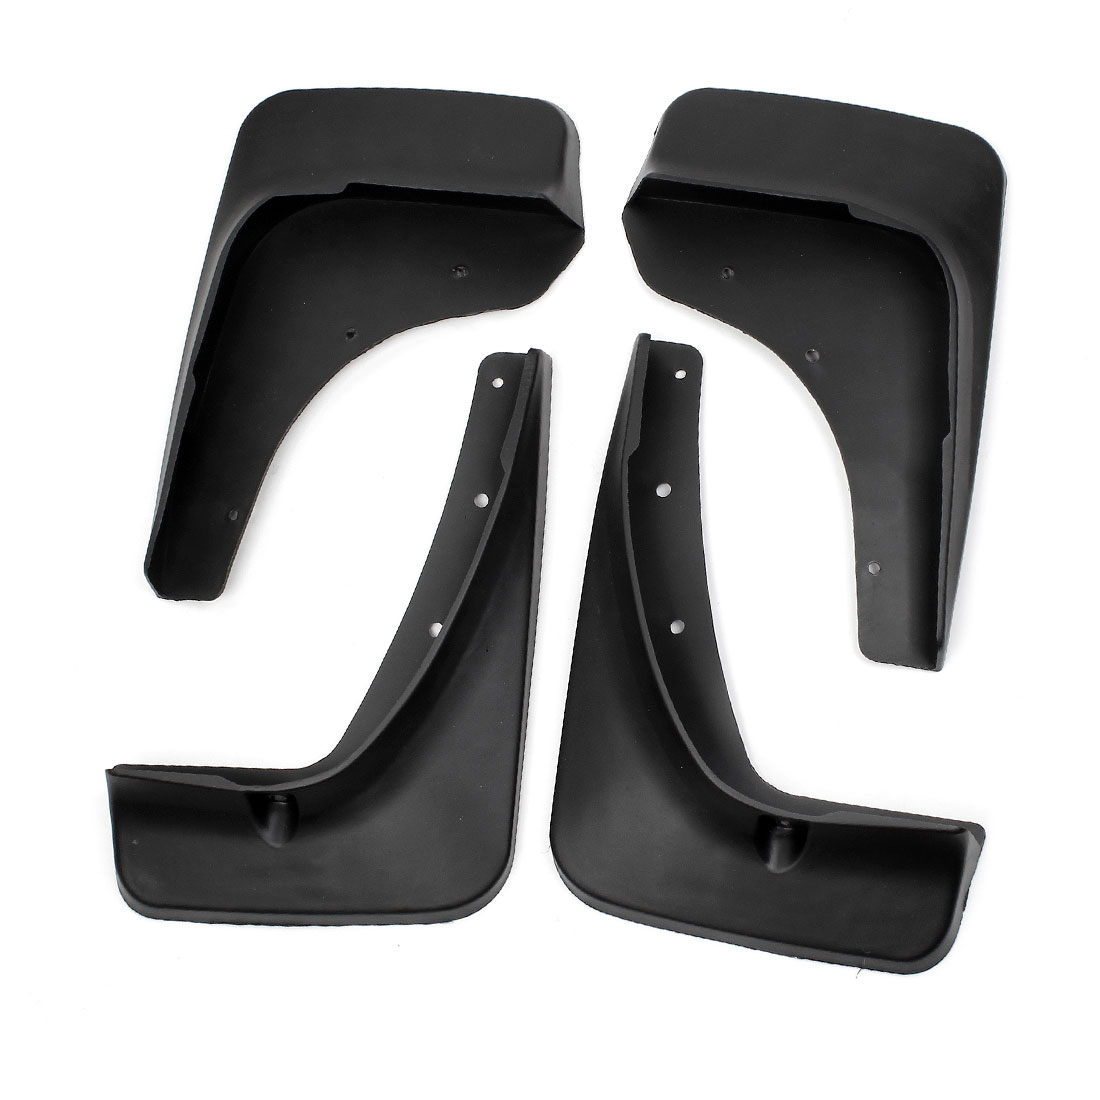 4 in 1 Car Vehicle Splash Guards Front Rear Mud Flaps Set for Mazda CX-5